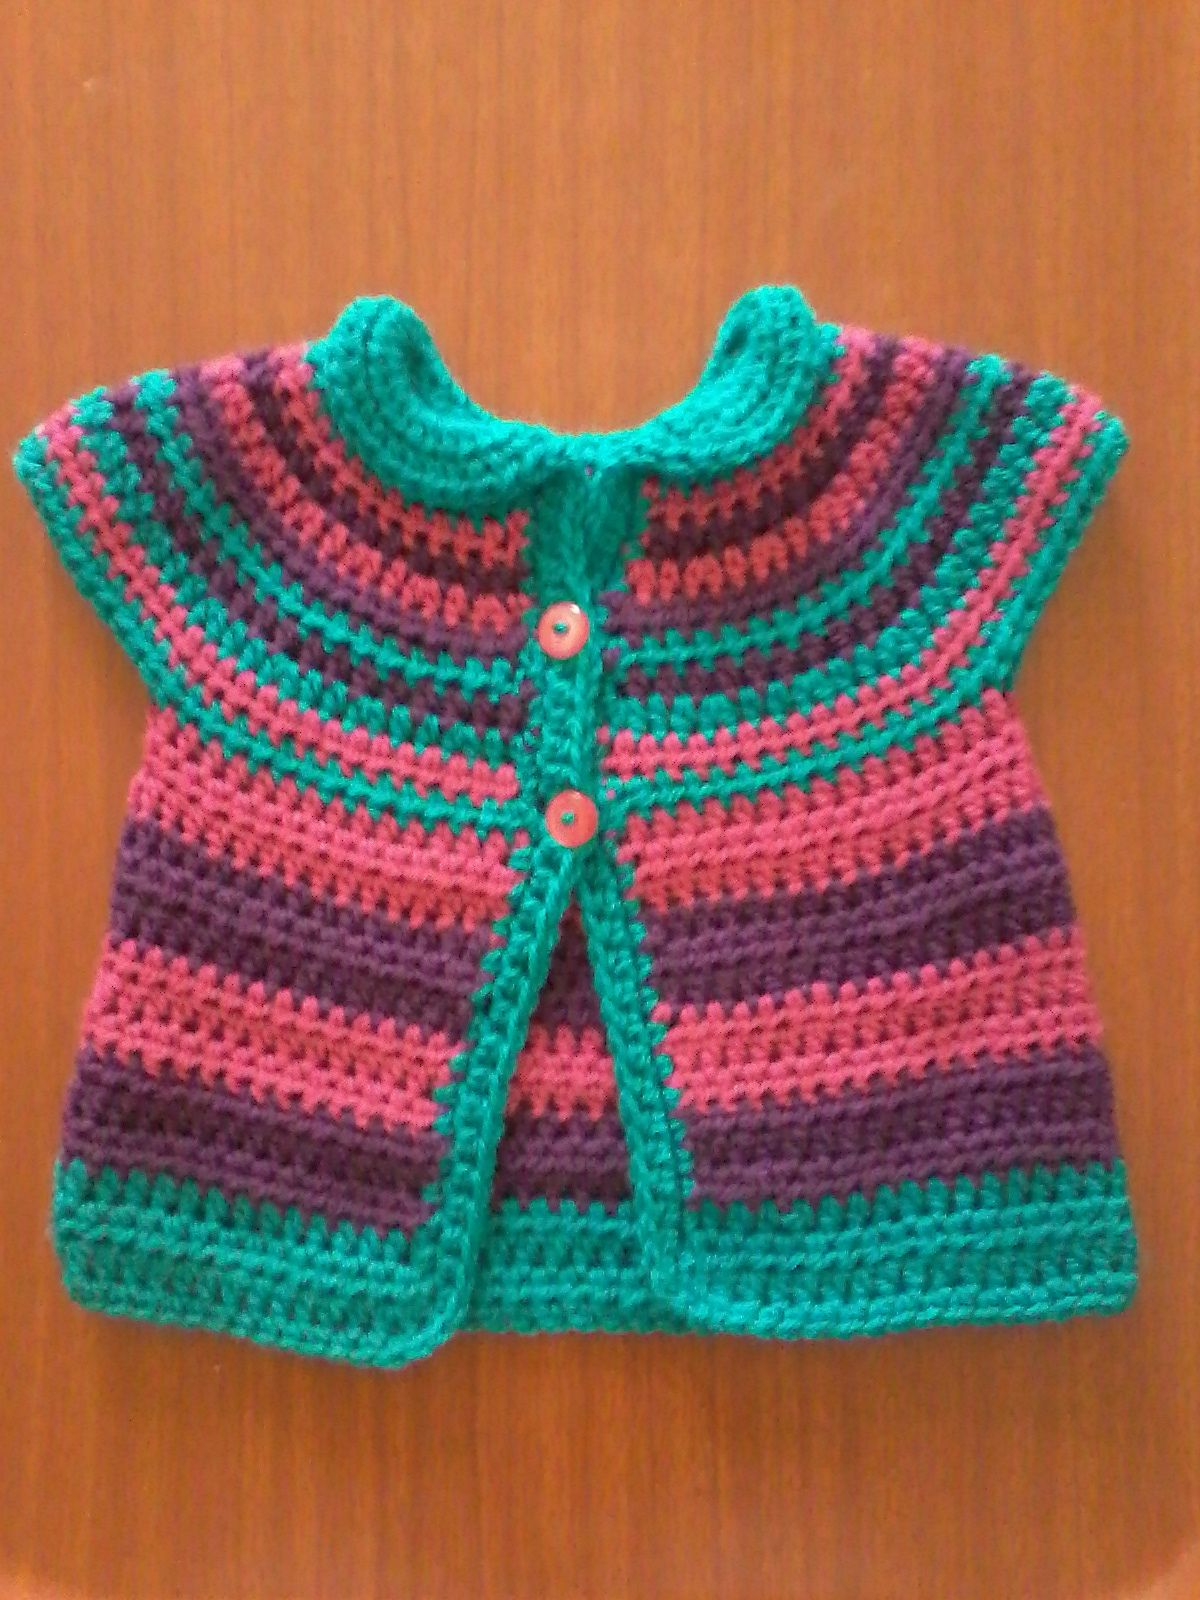 Azalea Cardigan By Amy H. Aymond - Free Crochet Pattern - (ravelry ...